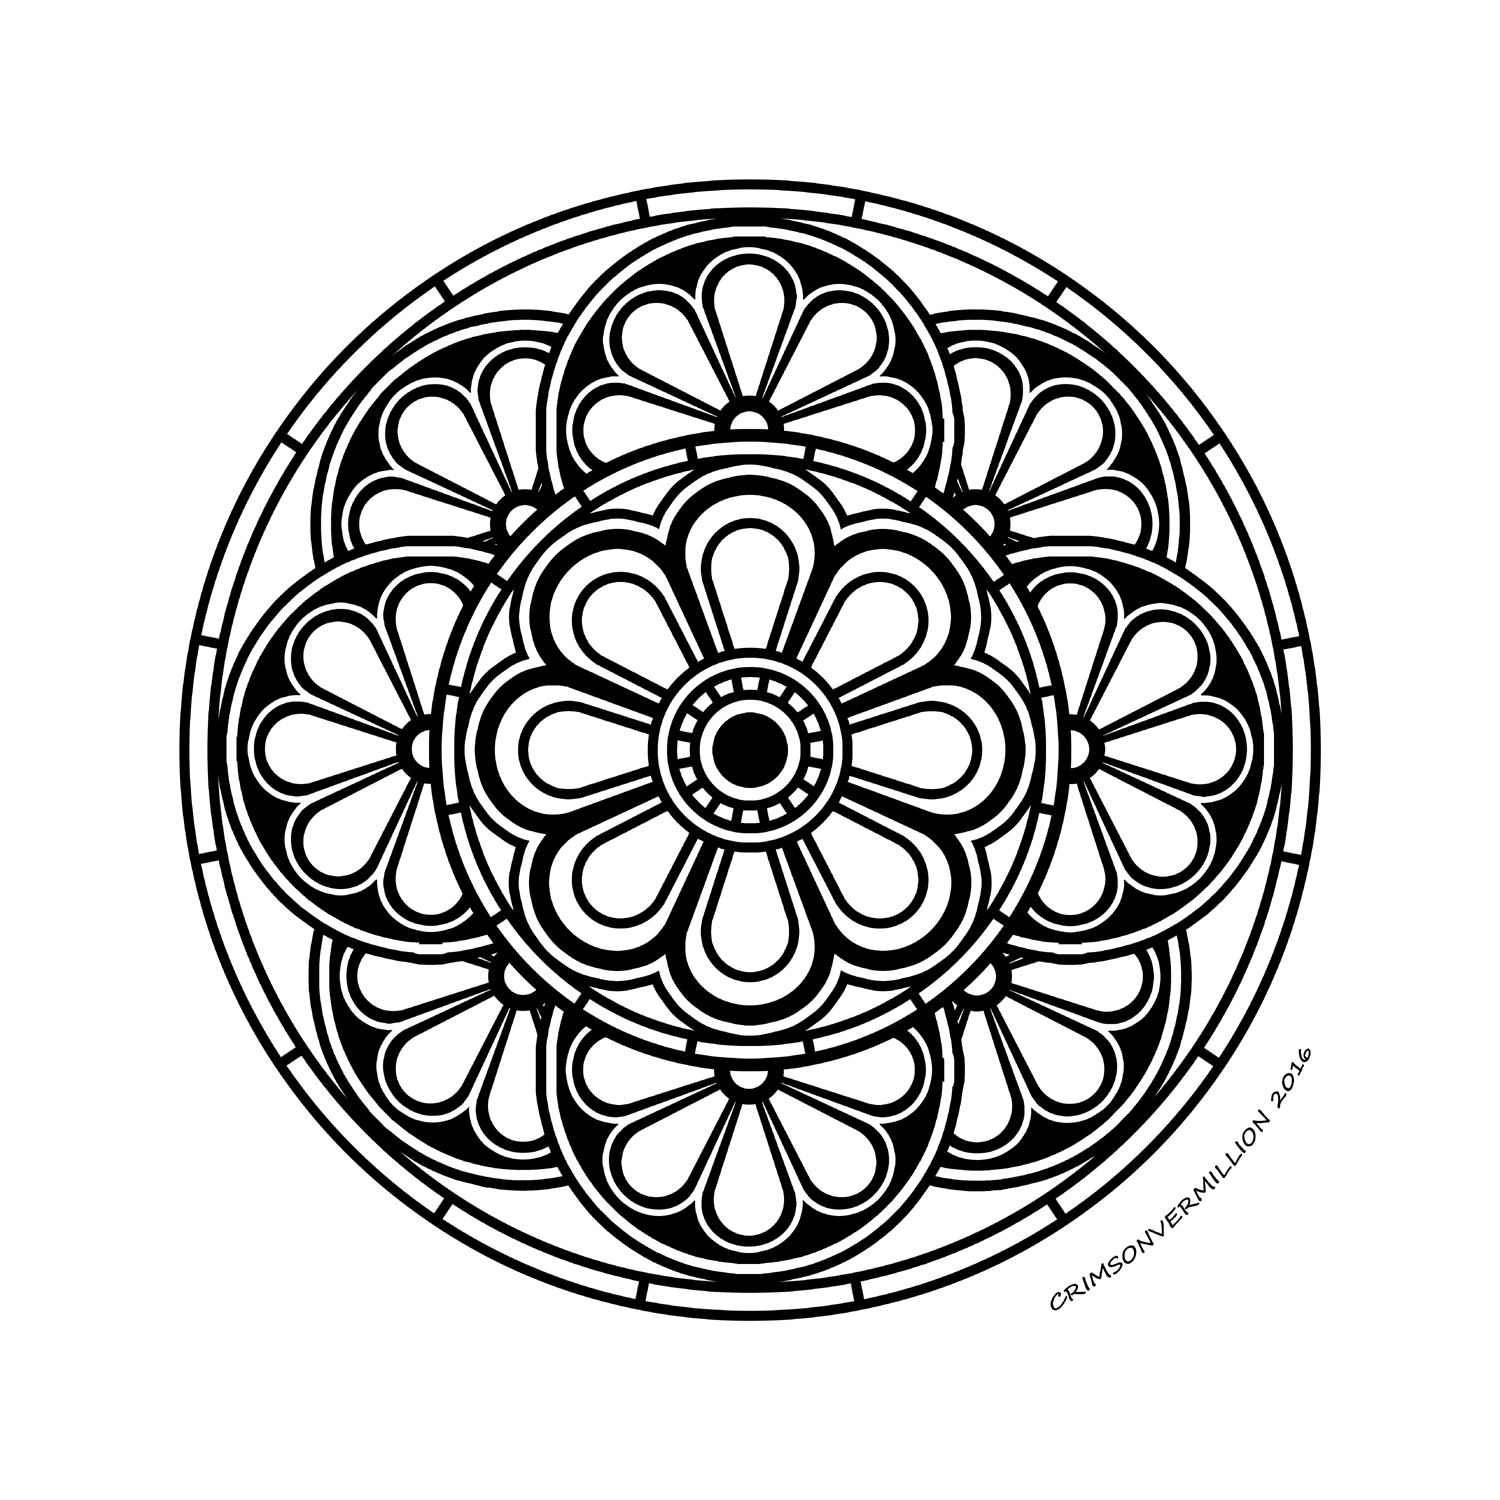 With all his rounded, this mandala is absolutely transcendent!